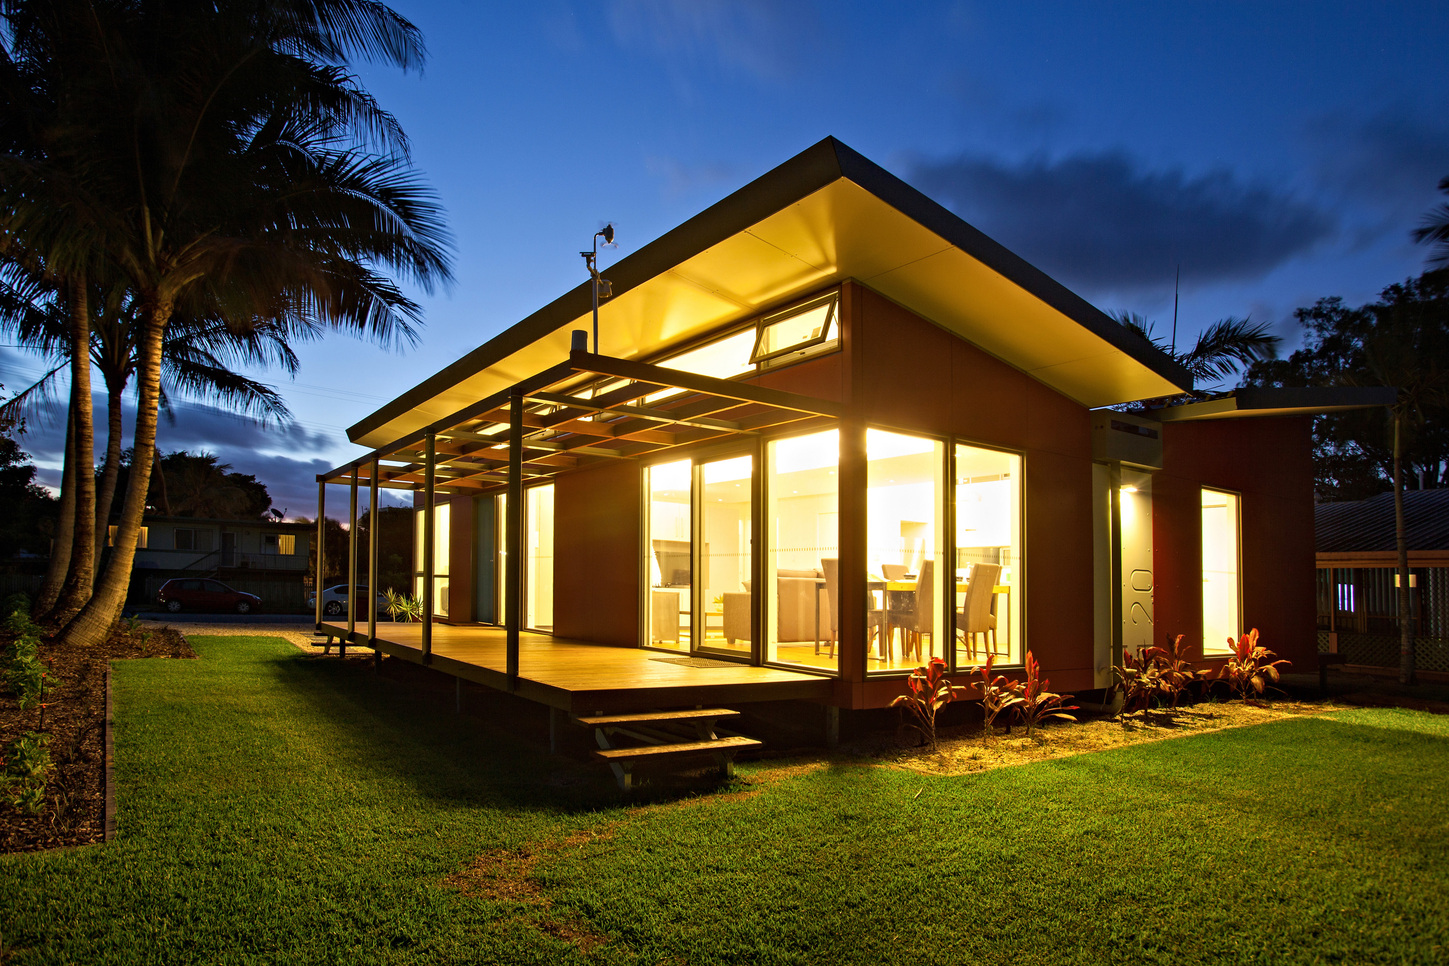 20 shades of beige lessons from japanese prefab housing architecture and design - Container homes queensland ...